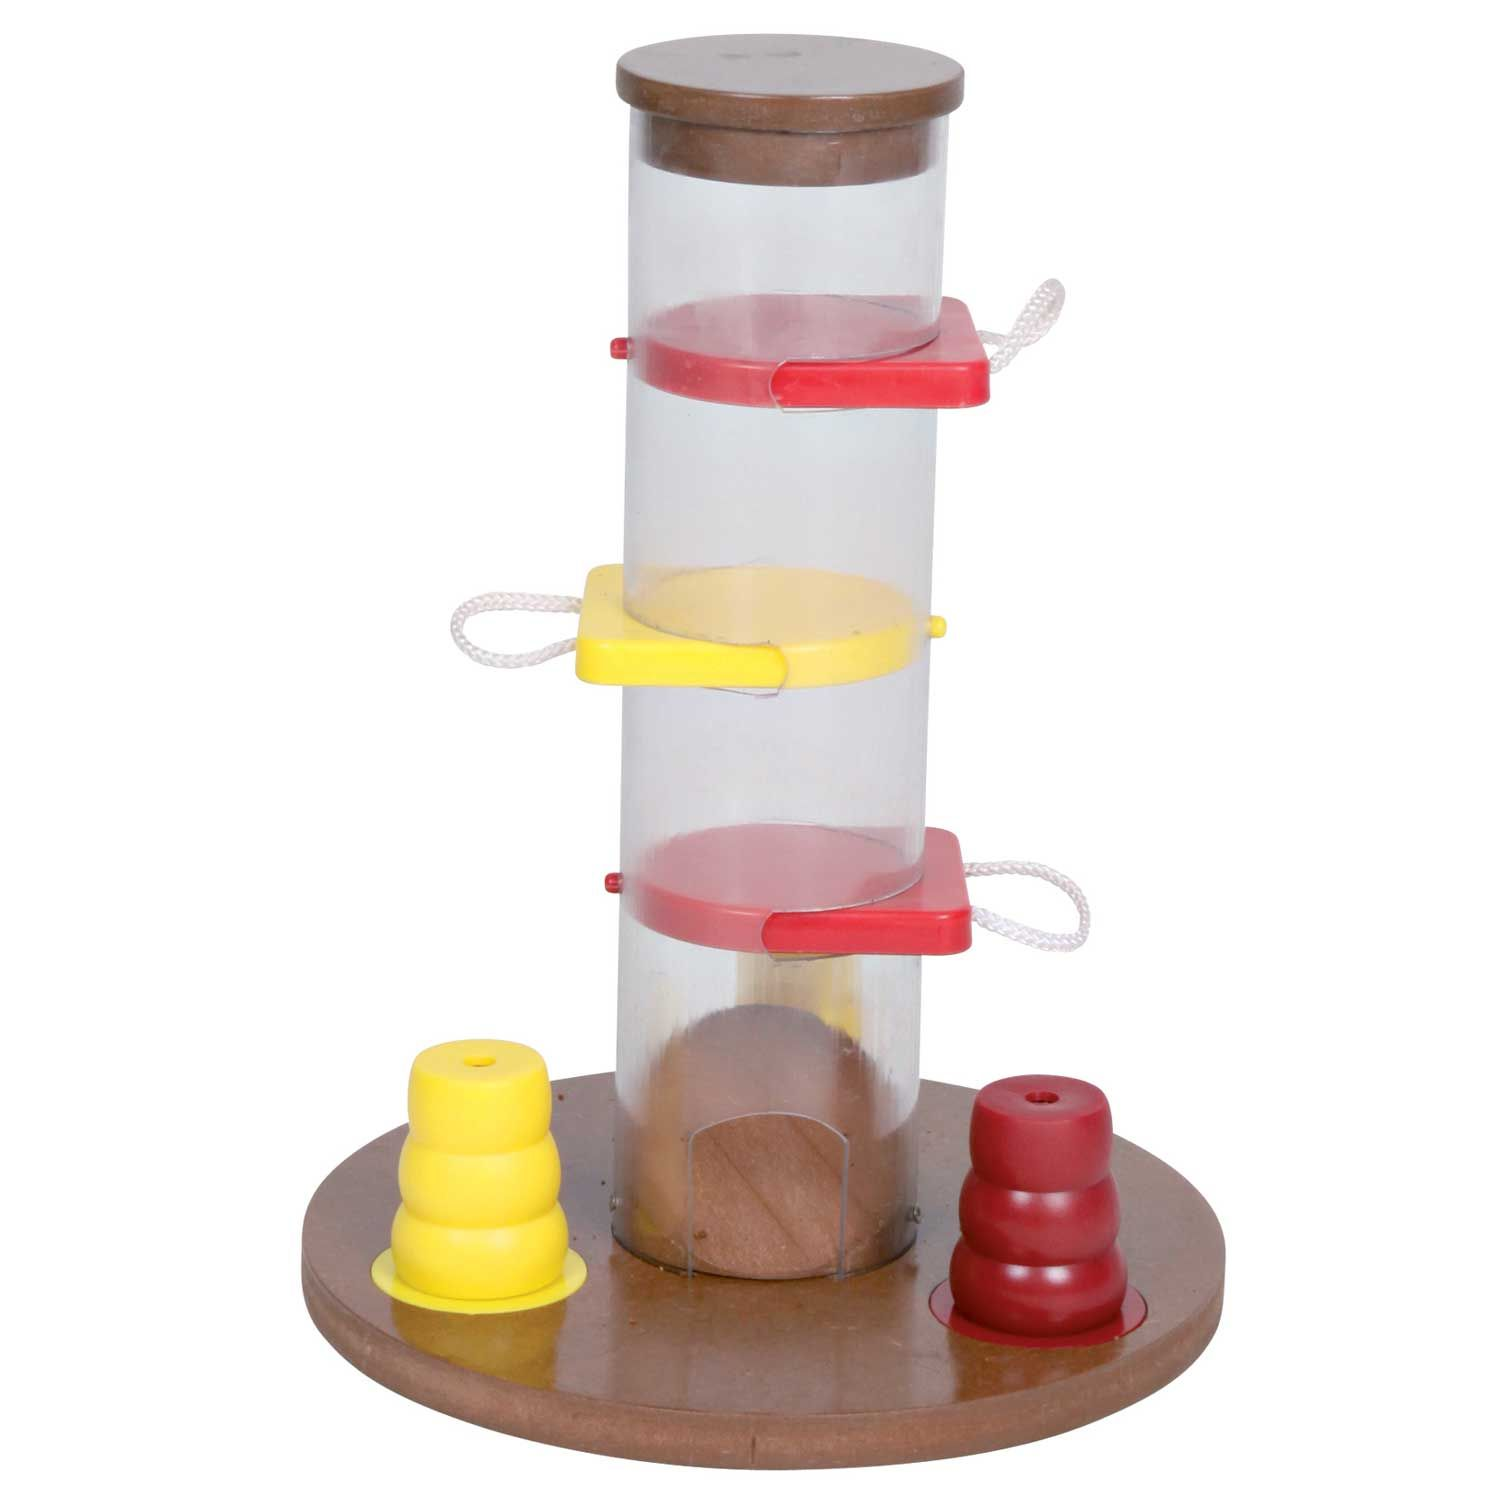 Dog gambling tower toy roulette viper